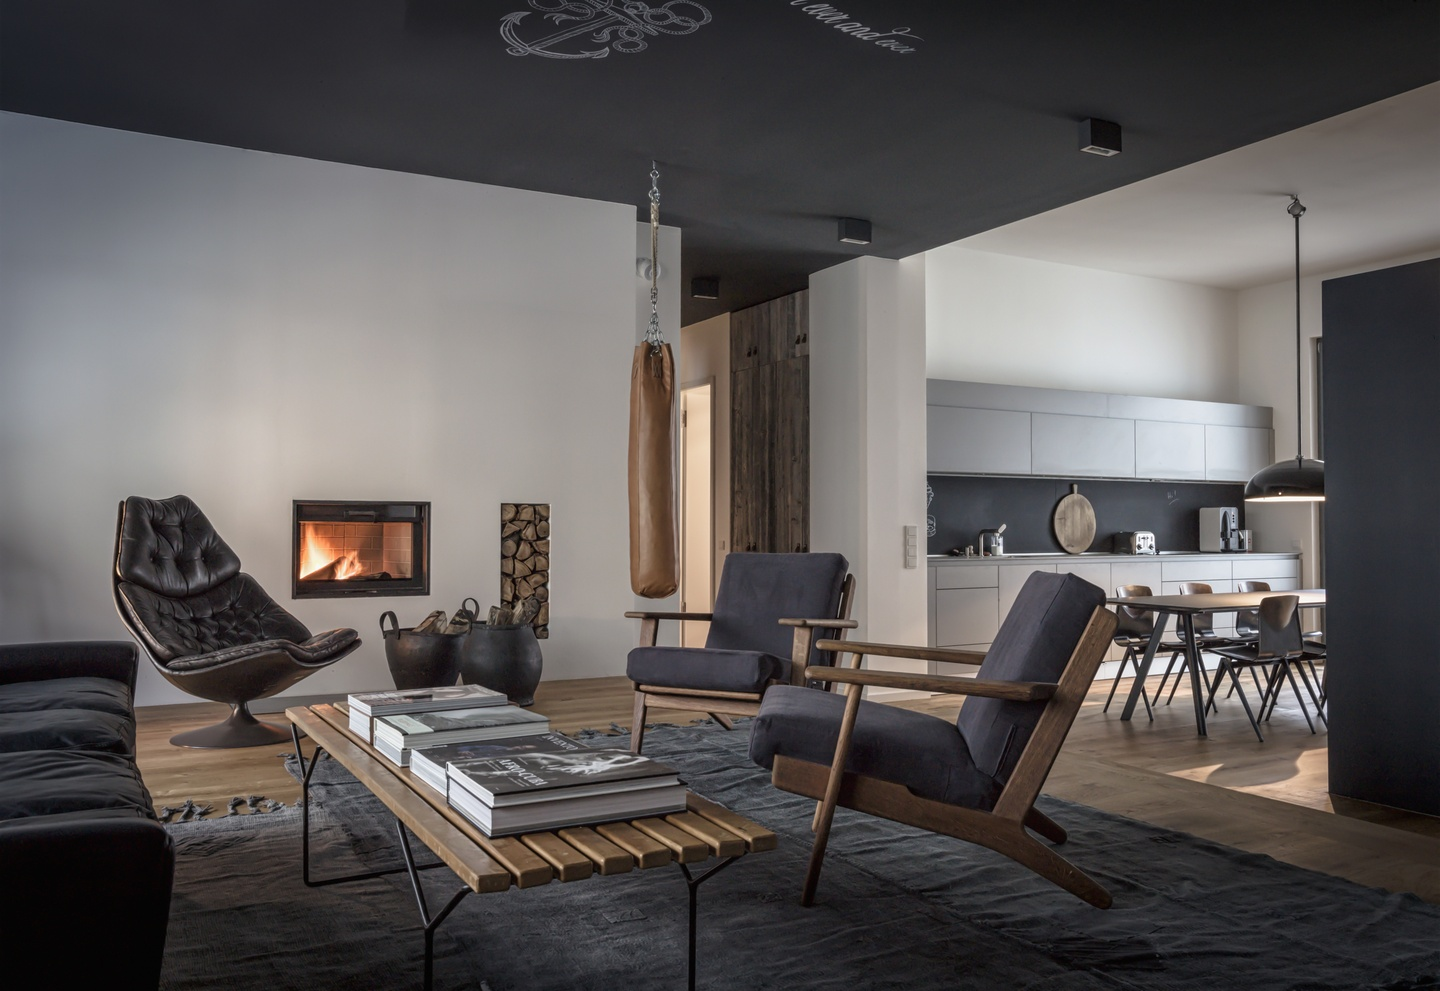 Berlin workshop spaces Private residence Nomads Apartment image 0